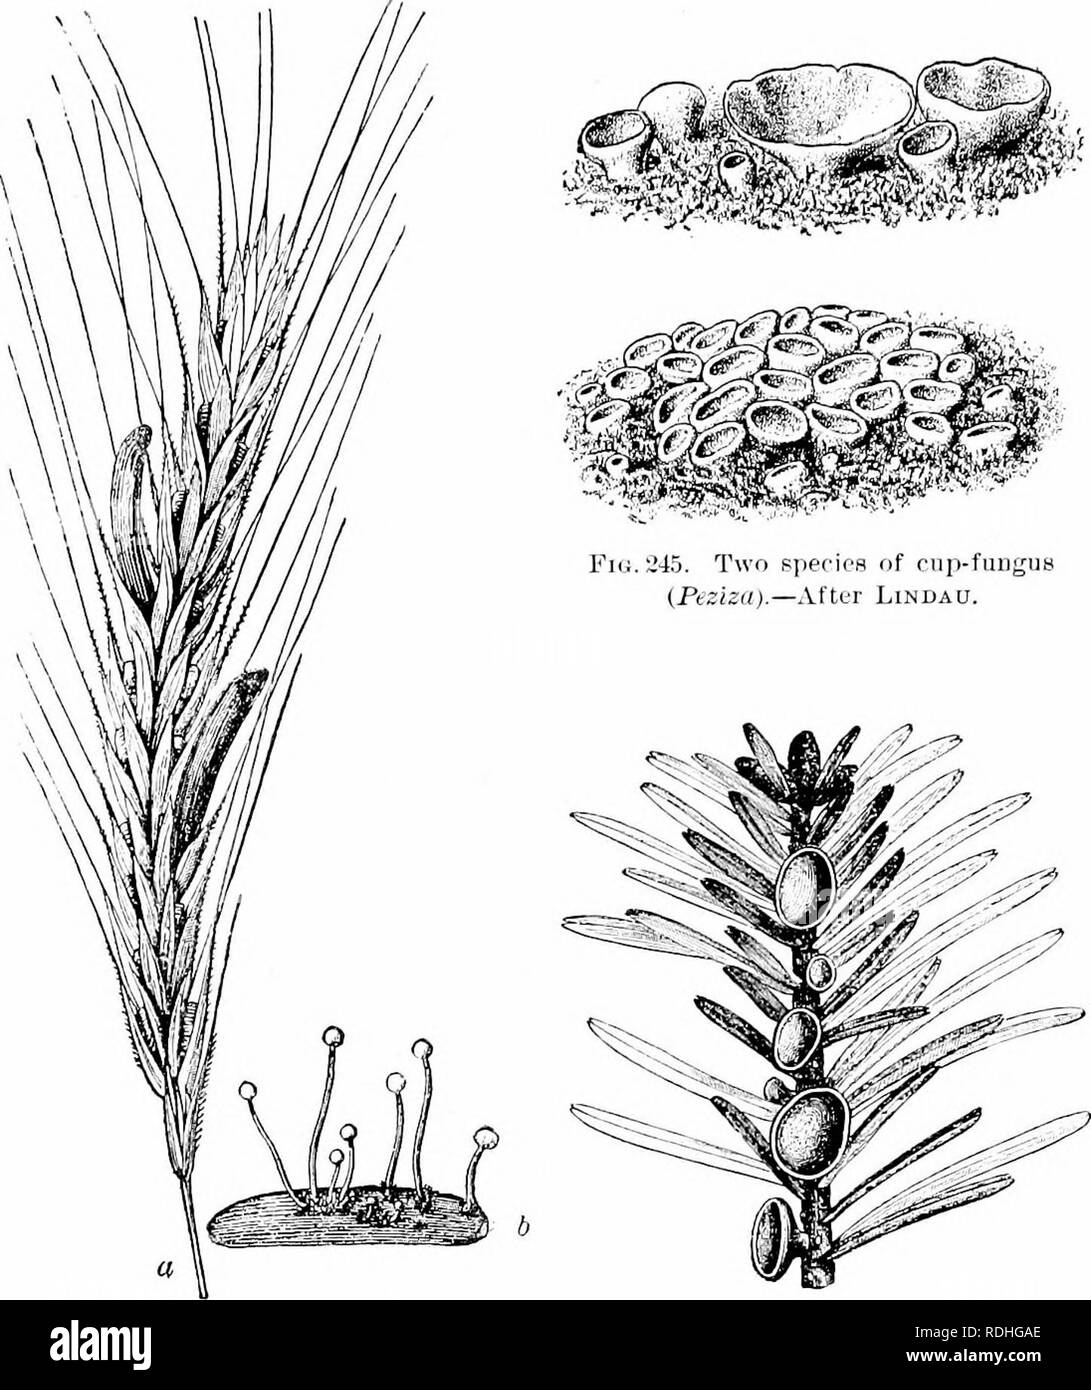 ". Plant studies; an elementary botany. Botany. TllALLUPlIYTES; FUNGI i!T7. Fu;. 2-11. Head of rye attacked by "" er- got "" {a), peculiar graiu-like masses replacing the grains of rye ; also a mass of ""ergot"" germinating' to form spores (6).—After Tulasne. Fic..'2-lii. A cup-fungus (Pitya) grow- 1112; on a spruce iPicea). — After Eedm. In some of these forms the ascocarp is completely closed, as in the lilac mildew; in otlicrs it is flask-sliaped ; in others, as in the cup-fungi, it is like a cup or disk ; but in all the spores are inclosed by a delicate sac, the ascus.. Plea - Stock Image"